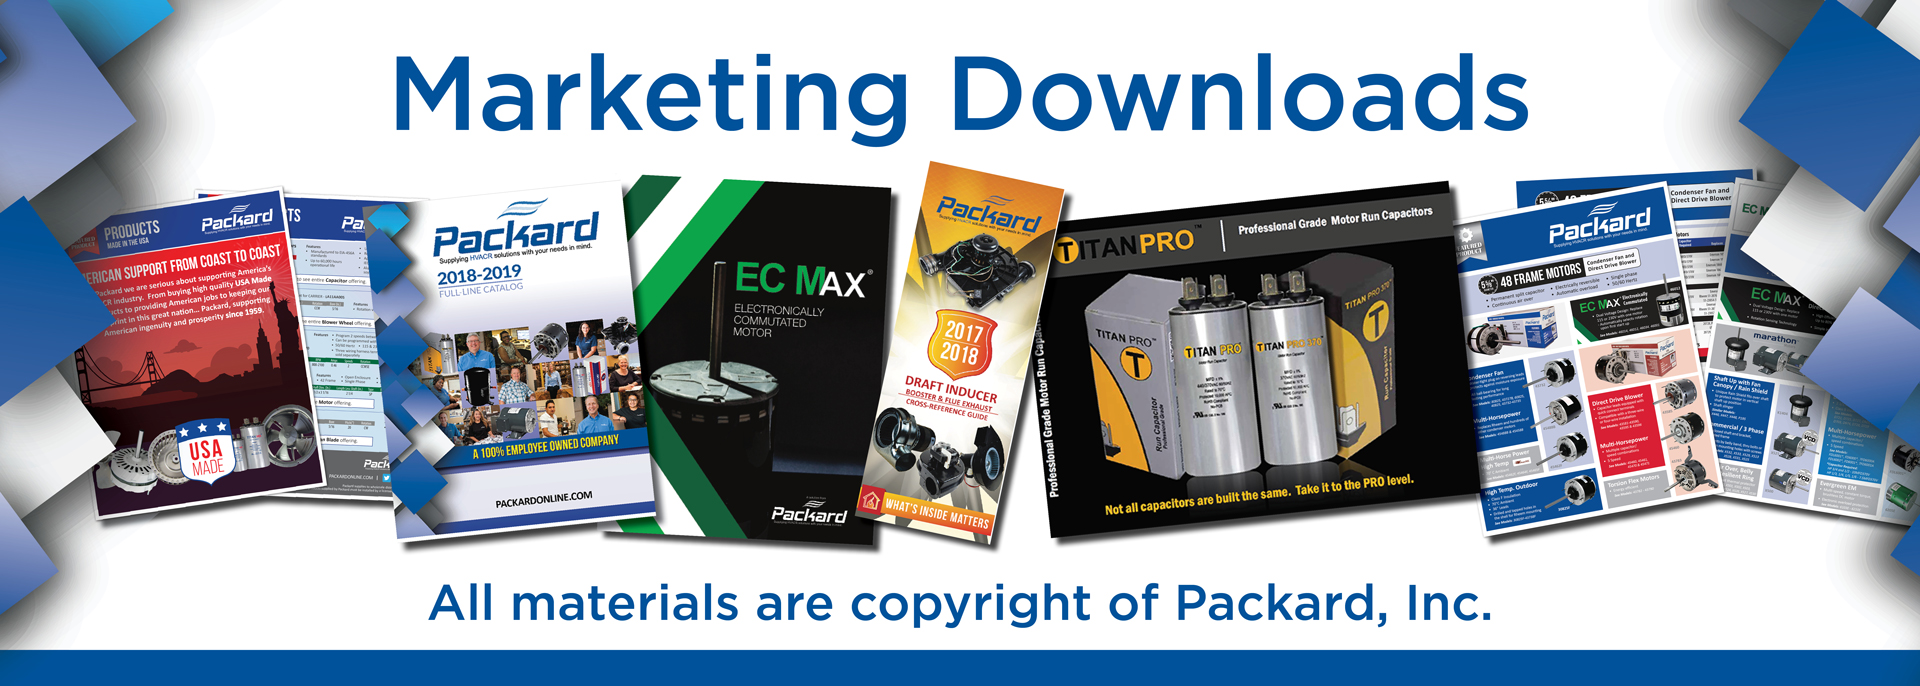 Marketing-Downloads